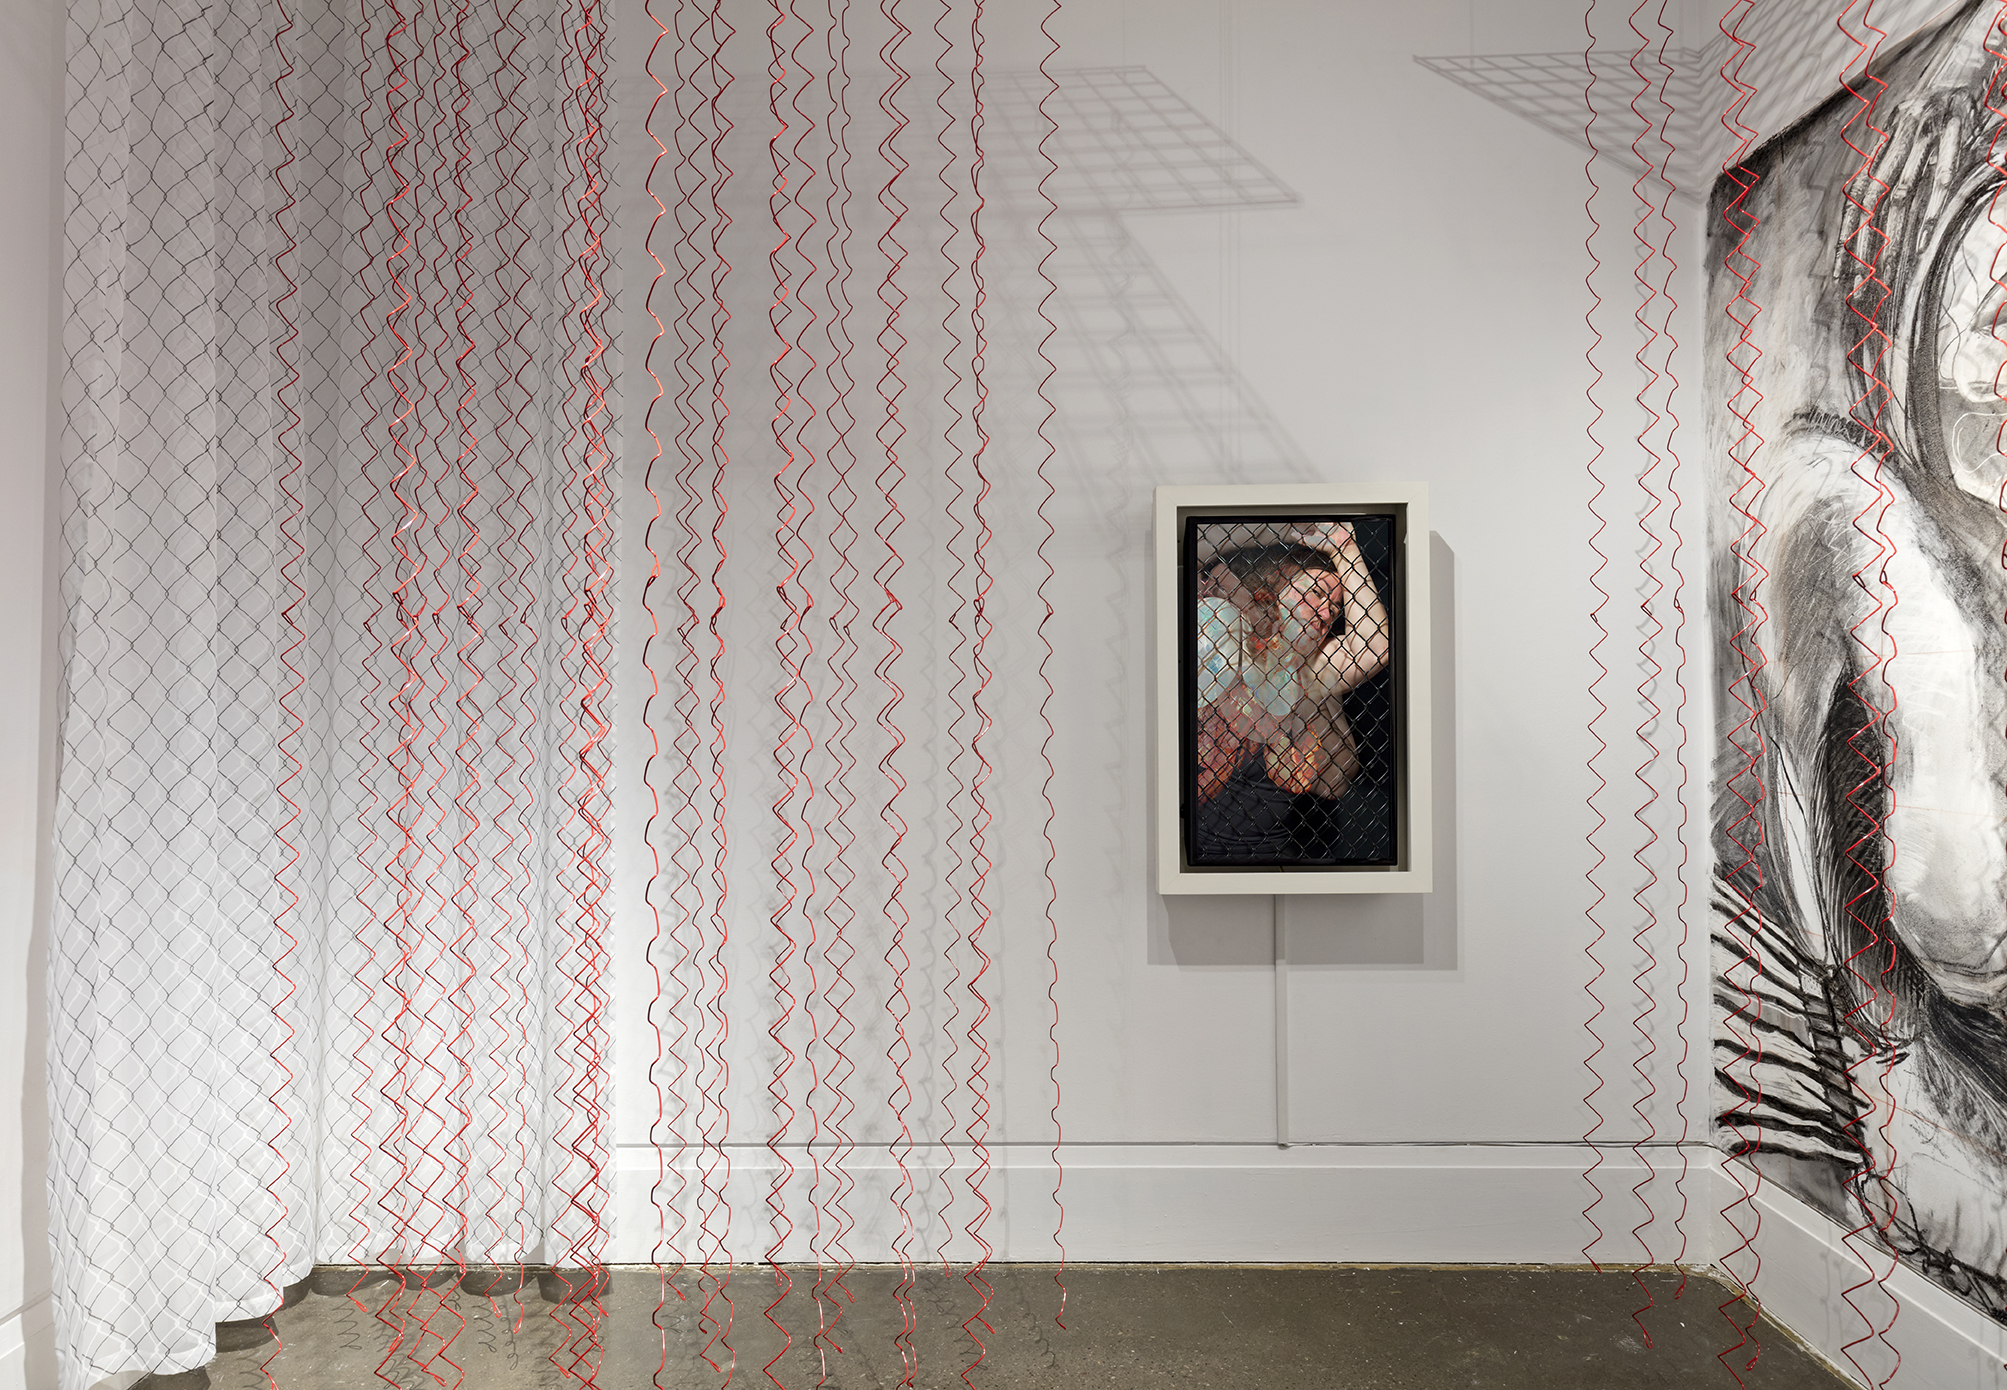 Kim Lee Kho, Chains Unlinked , XIT-RM Gallery, Art Gallery of Mississauga. Photo by Toni Hafkenscheid.